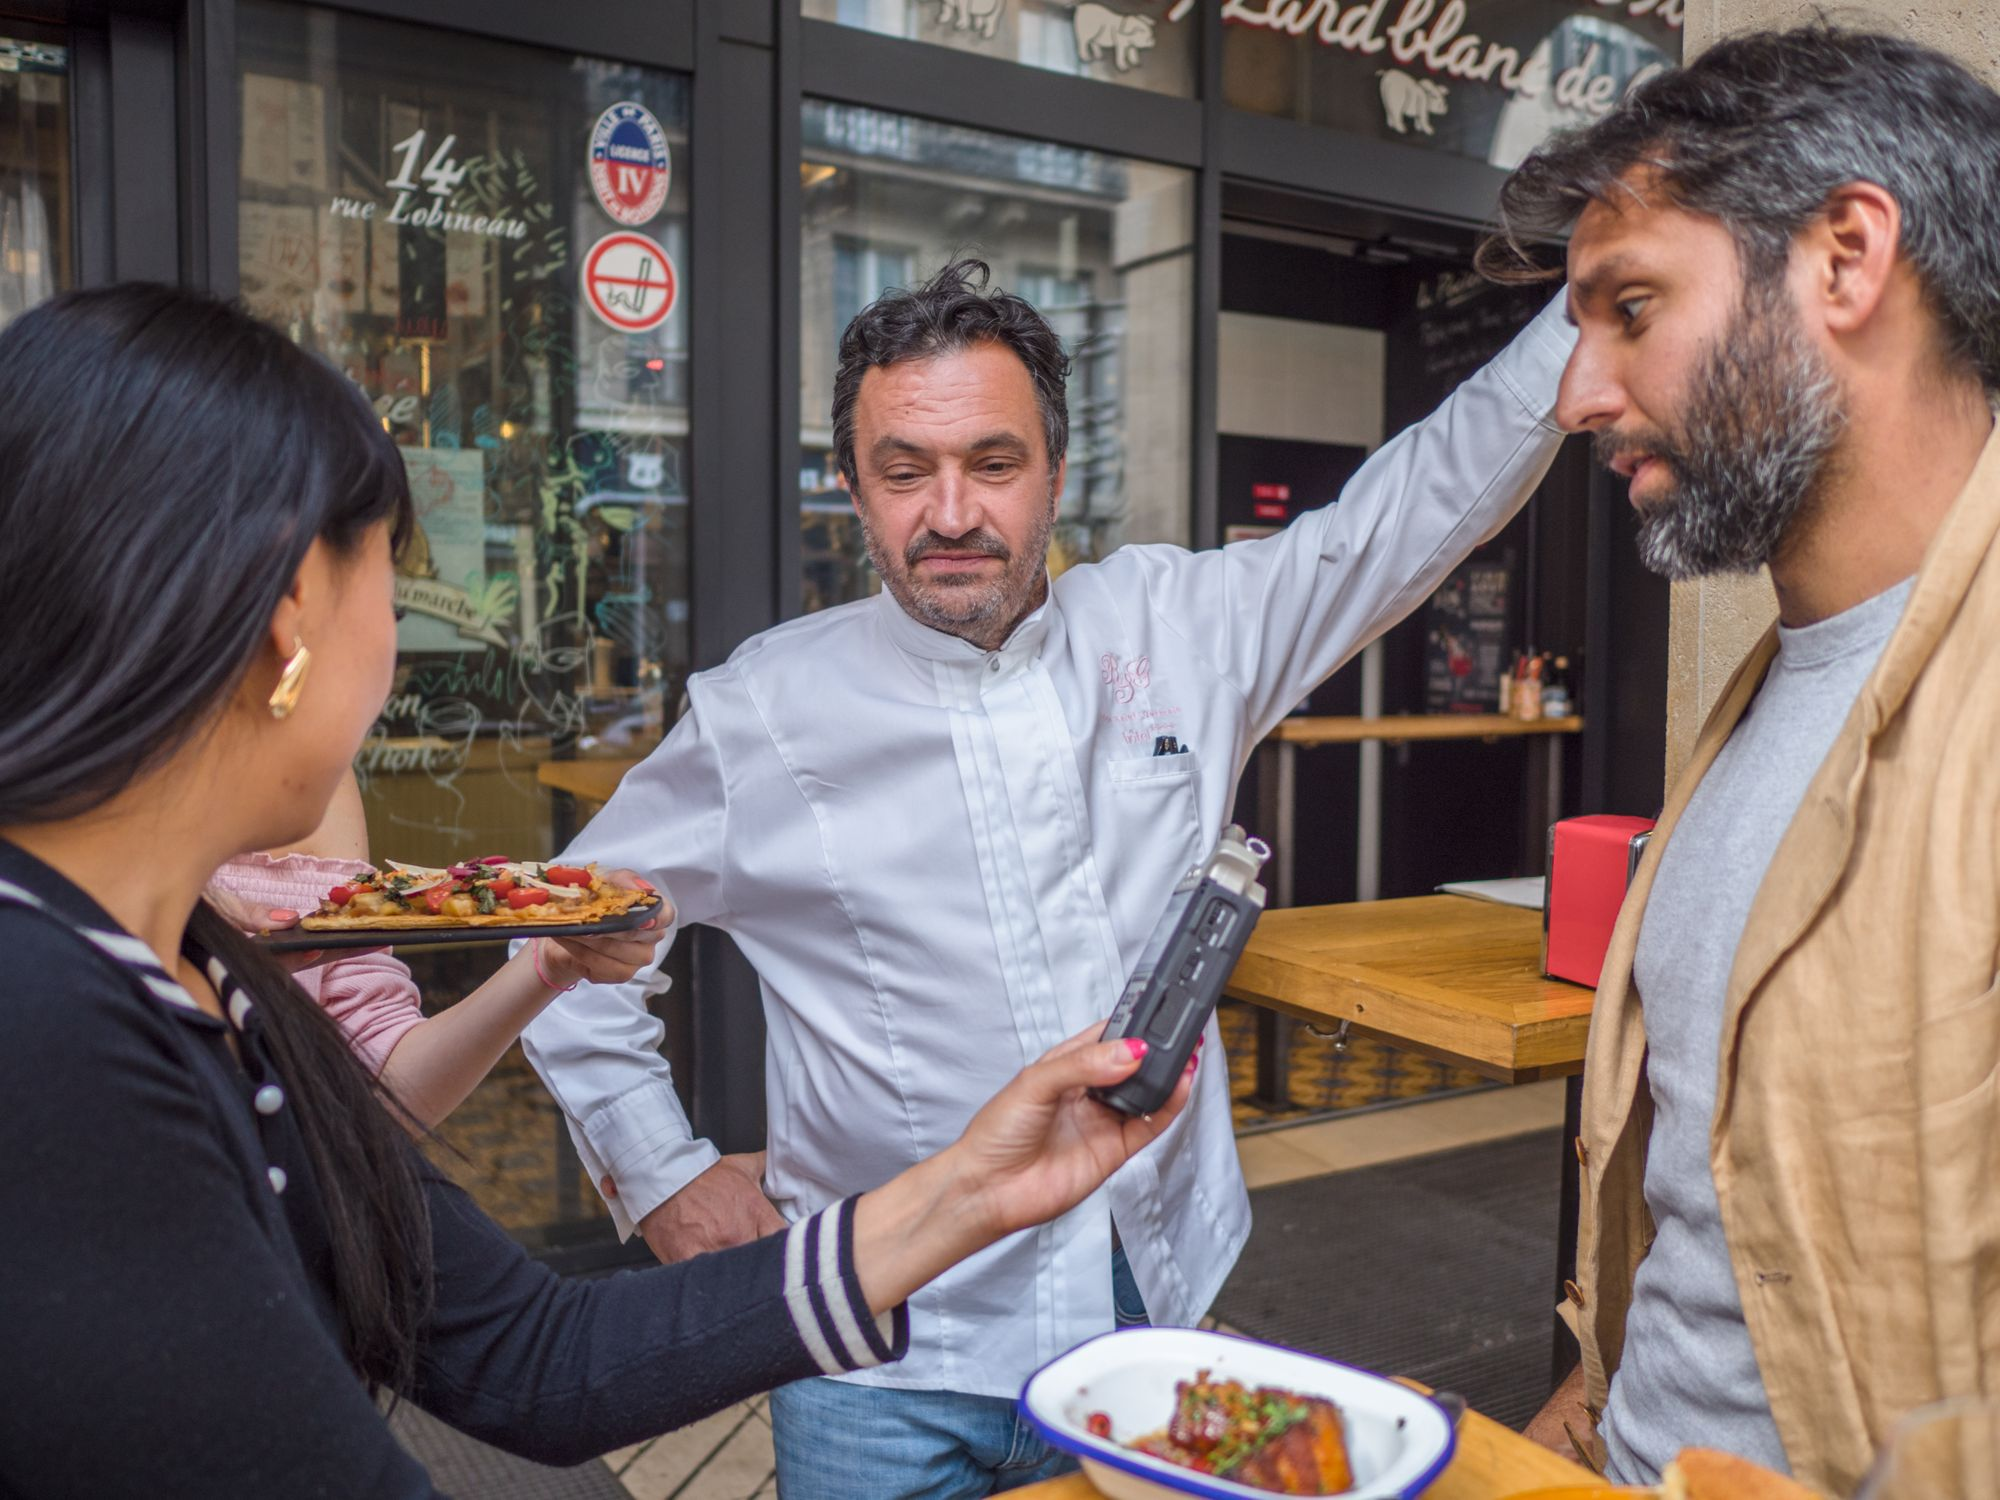 Chef Yves Camdeborde Of Le Comptoir On Founding The Bistronomy Movement That Revolutionized Paris